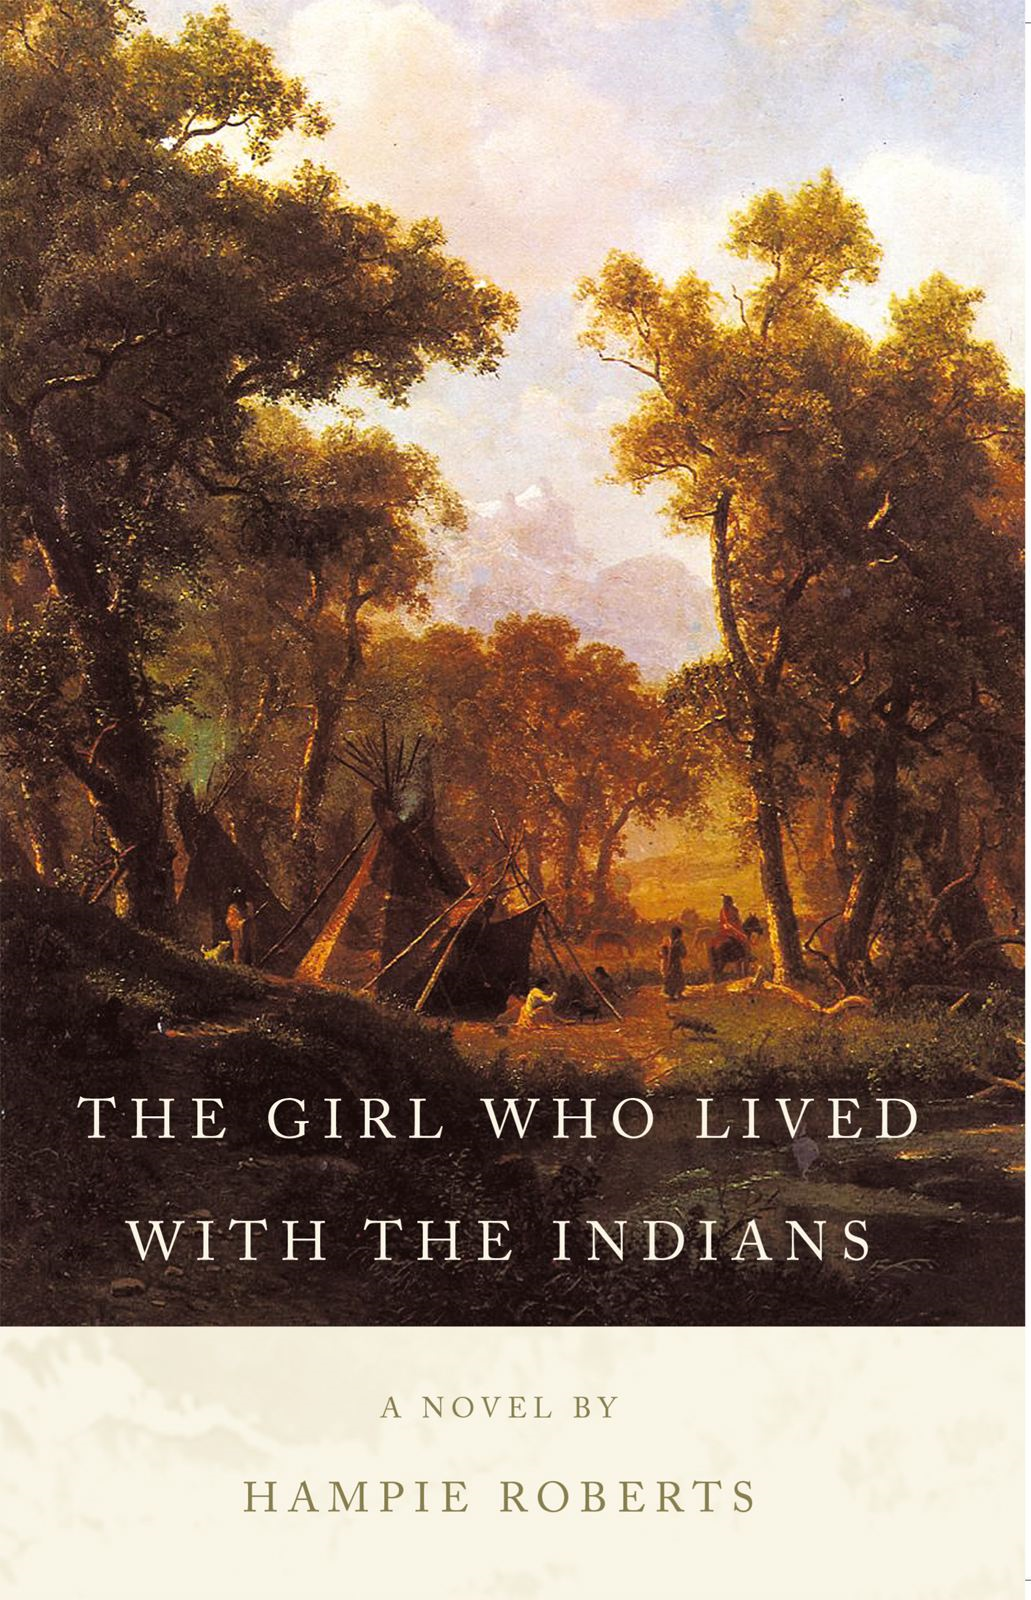 The Girl Who Lived with the Indians